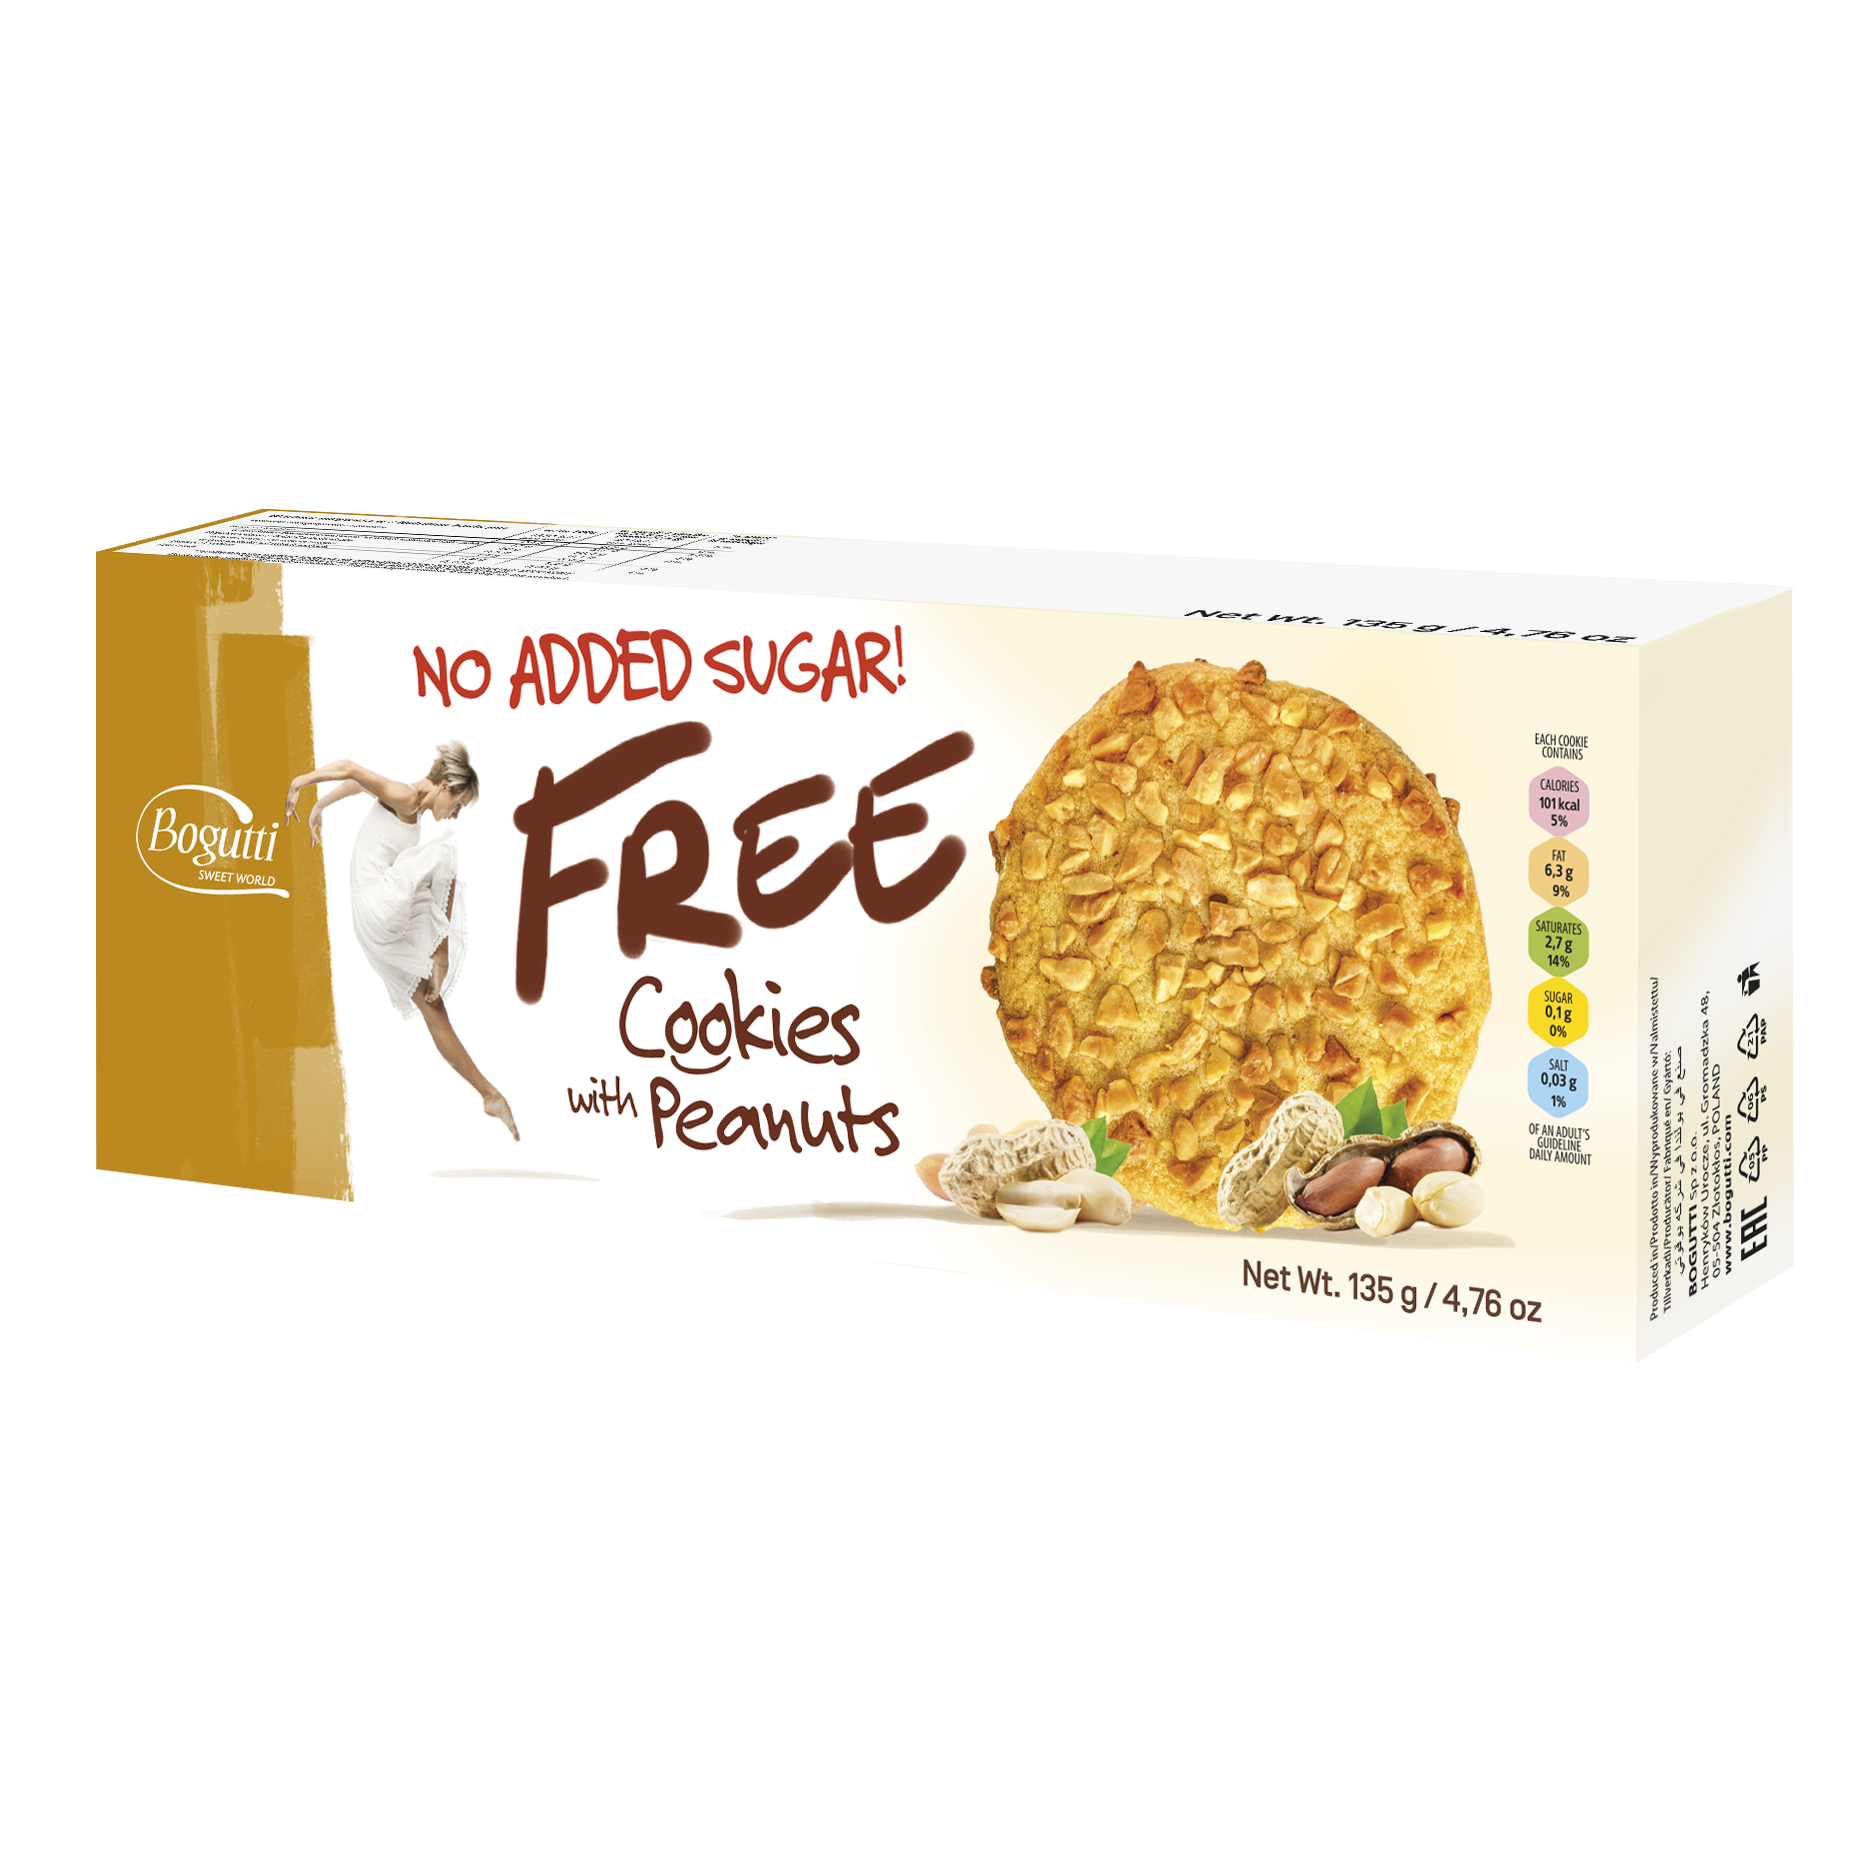 FREE – NO ADDED SUGAR Cookies with peanuts